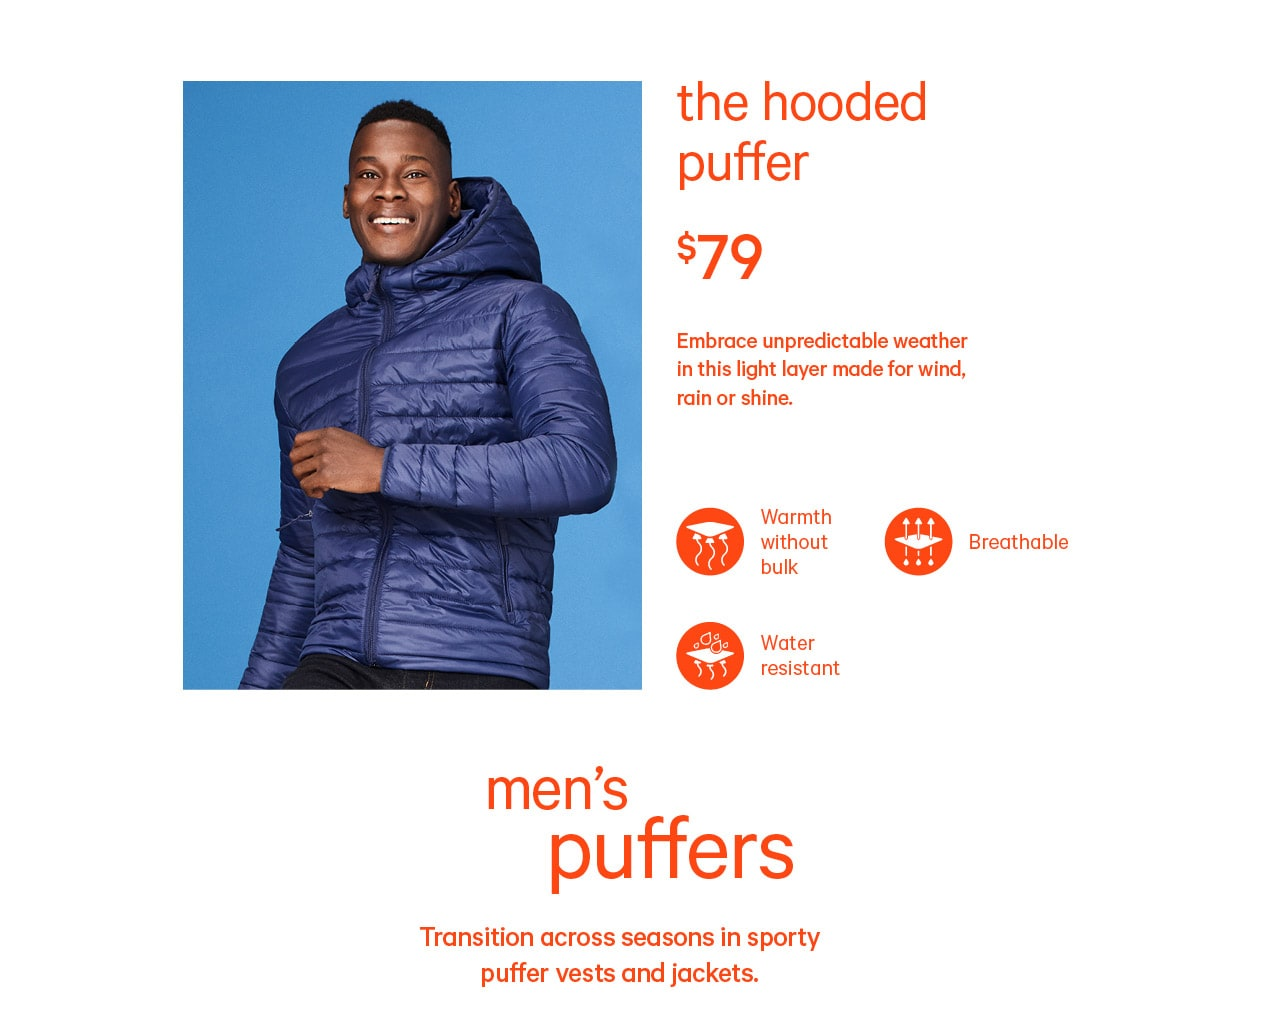 New men primaloft puffer for 79 dollars.